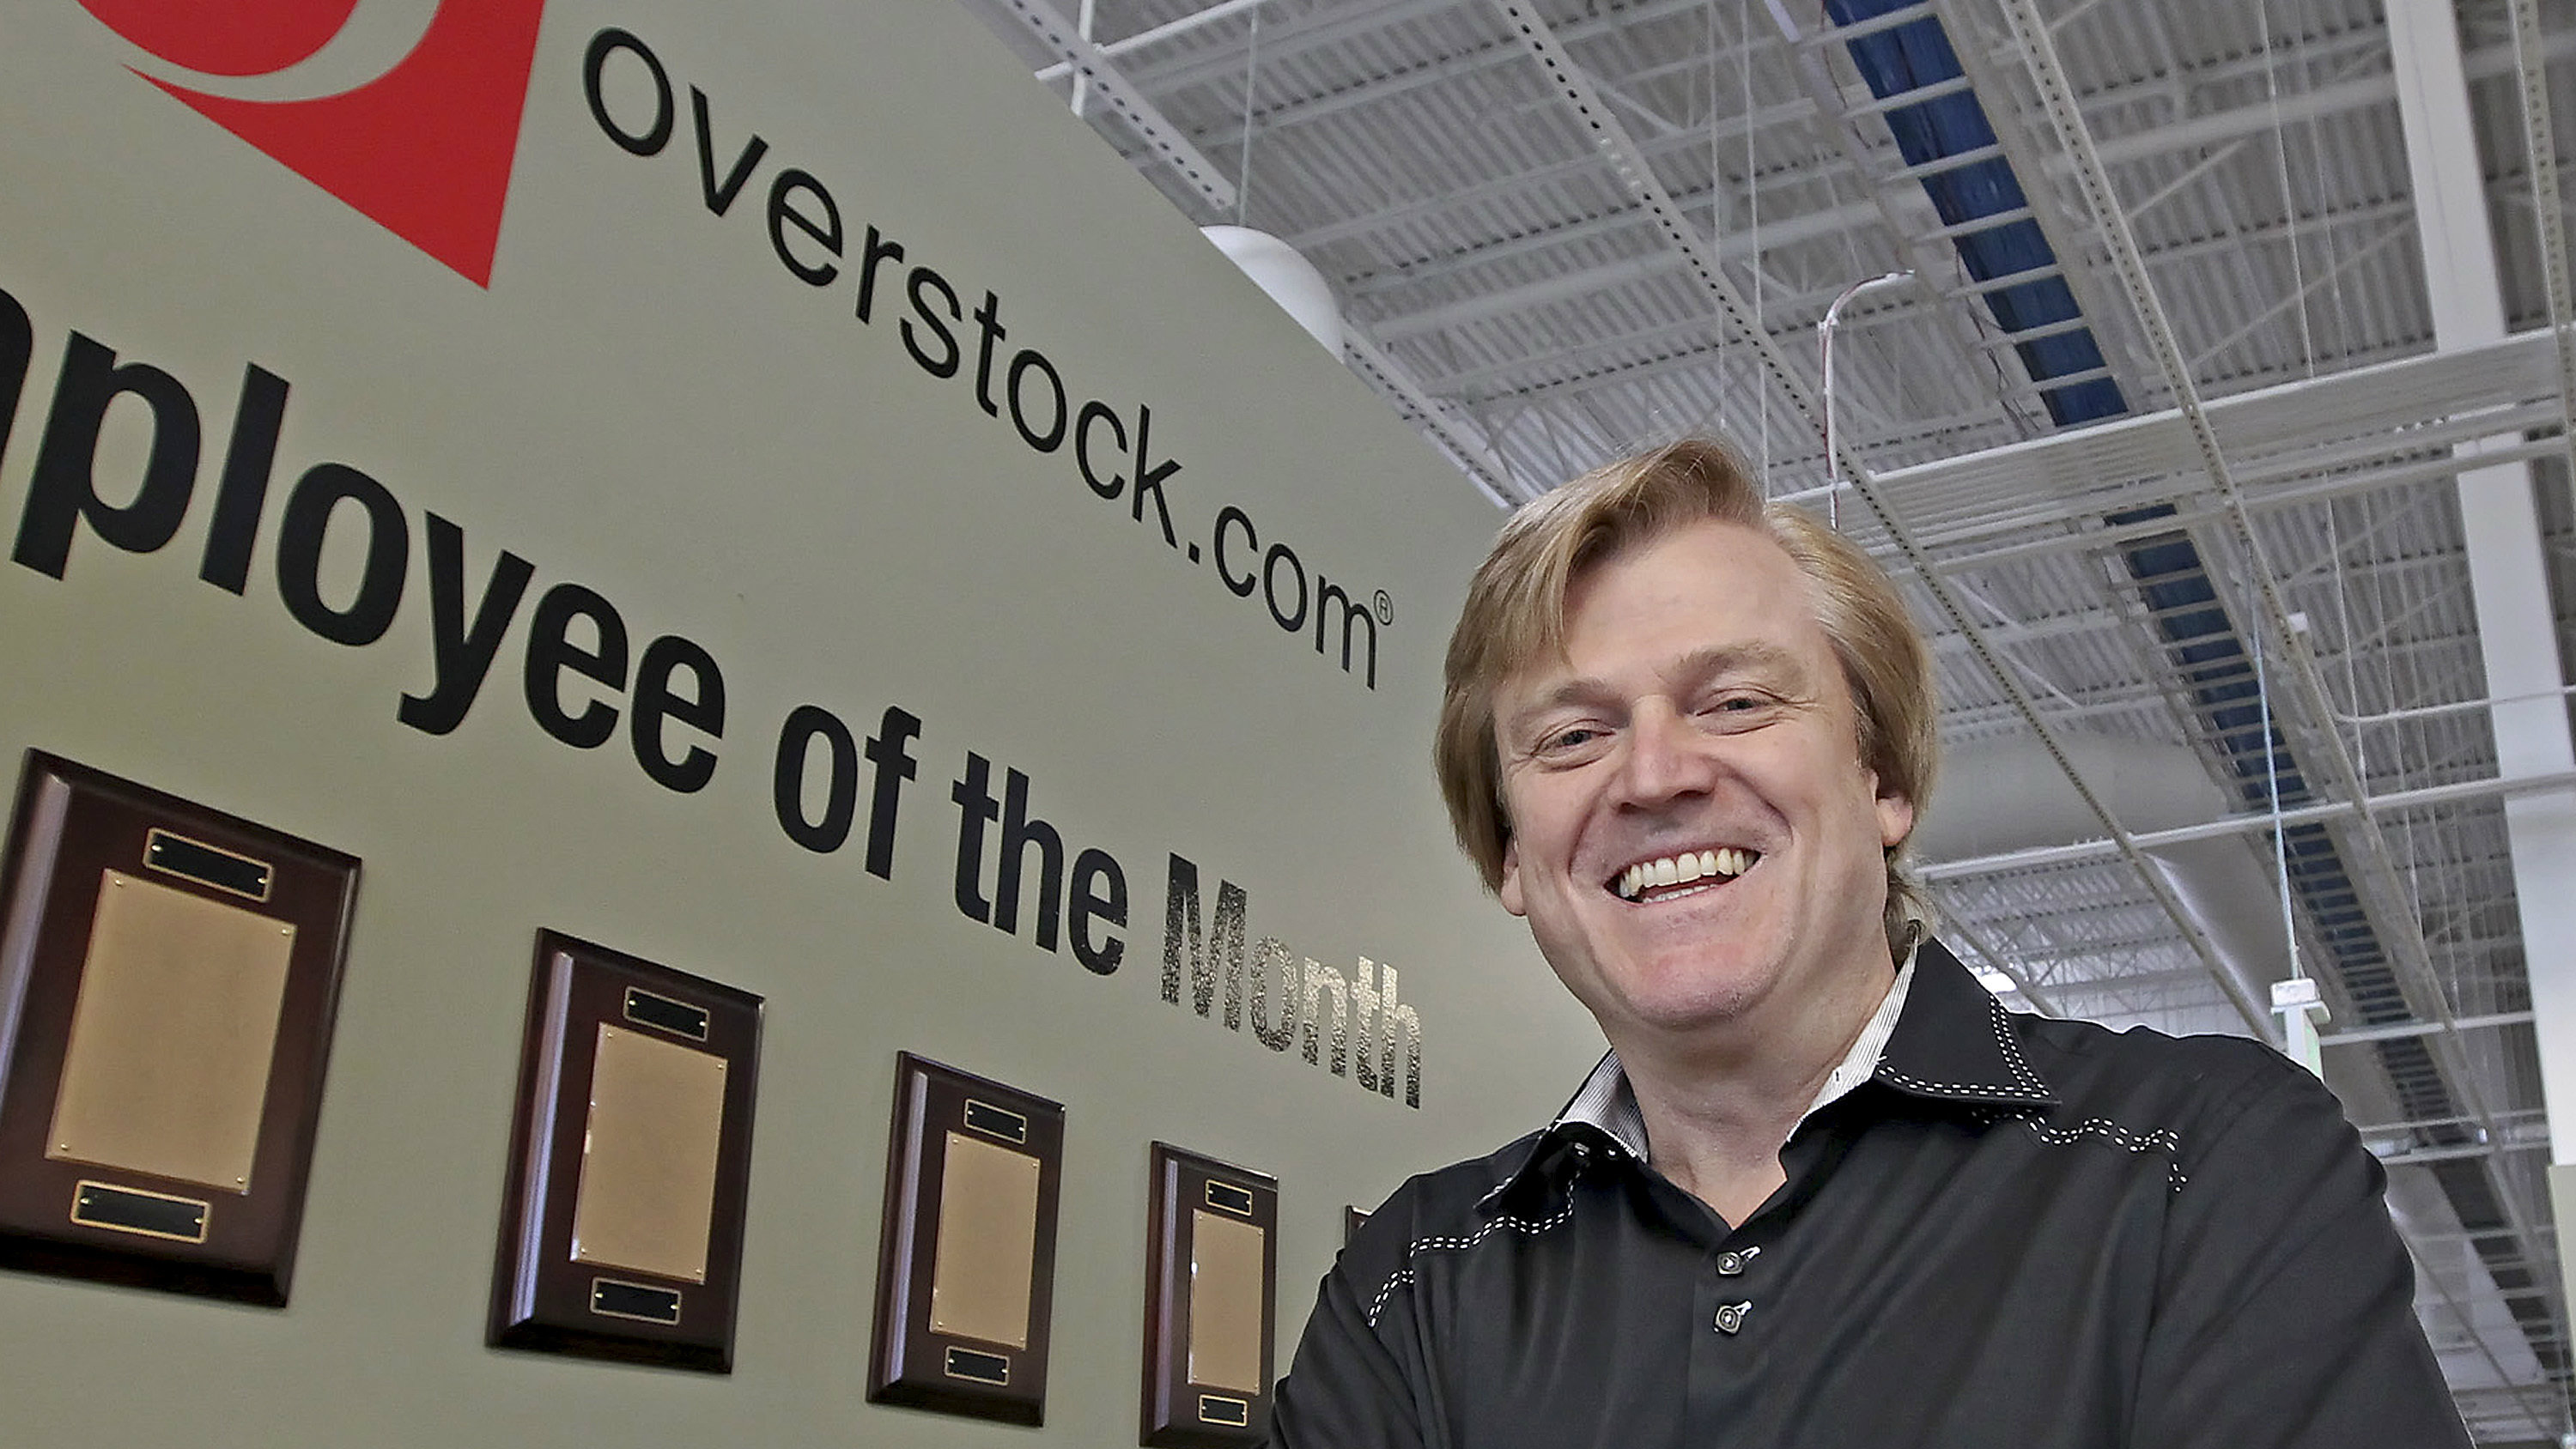 This March 25, 2010 file photo, Chairman and CEO of OverStock.com Patrick Byrne poses for a picture by the employee of the month wall at the warehouse of Overstock.com outside of Salt Lake City, Utah. Emboldened by the new White House administration, advocates including Byrne, the money man behind Utah's ambitious voucher proposal that was crushed by voters a decade ago, say there is a renewed appetite to expand school choice in the state.